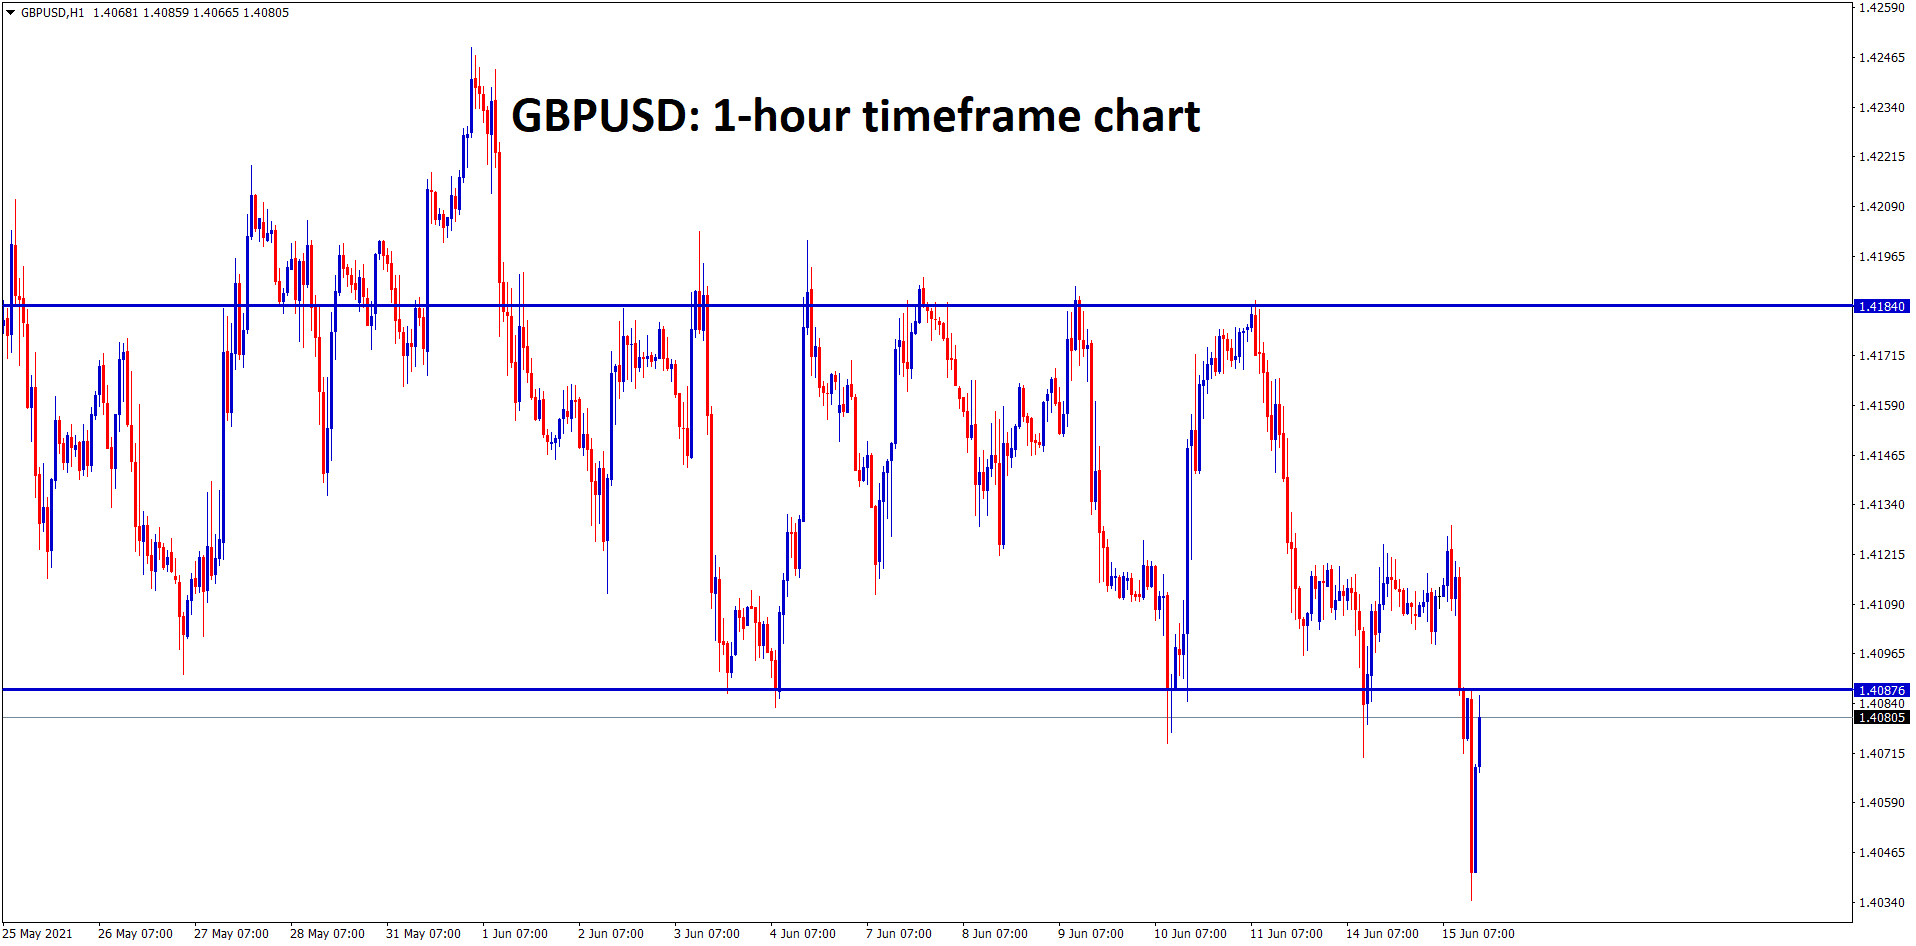 GBPUSD broken the bottom level of the range however market has bounced back harder to the retest zone